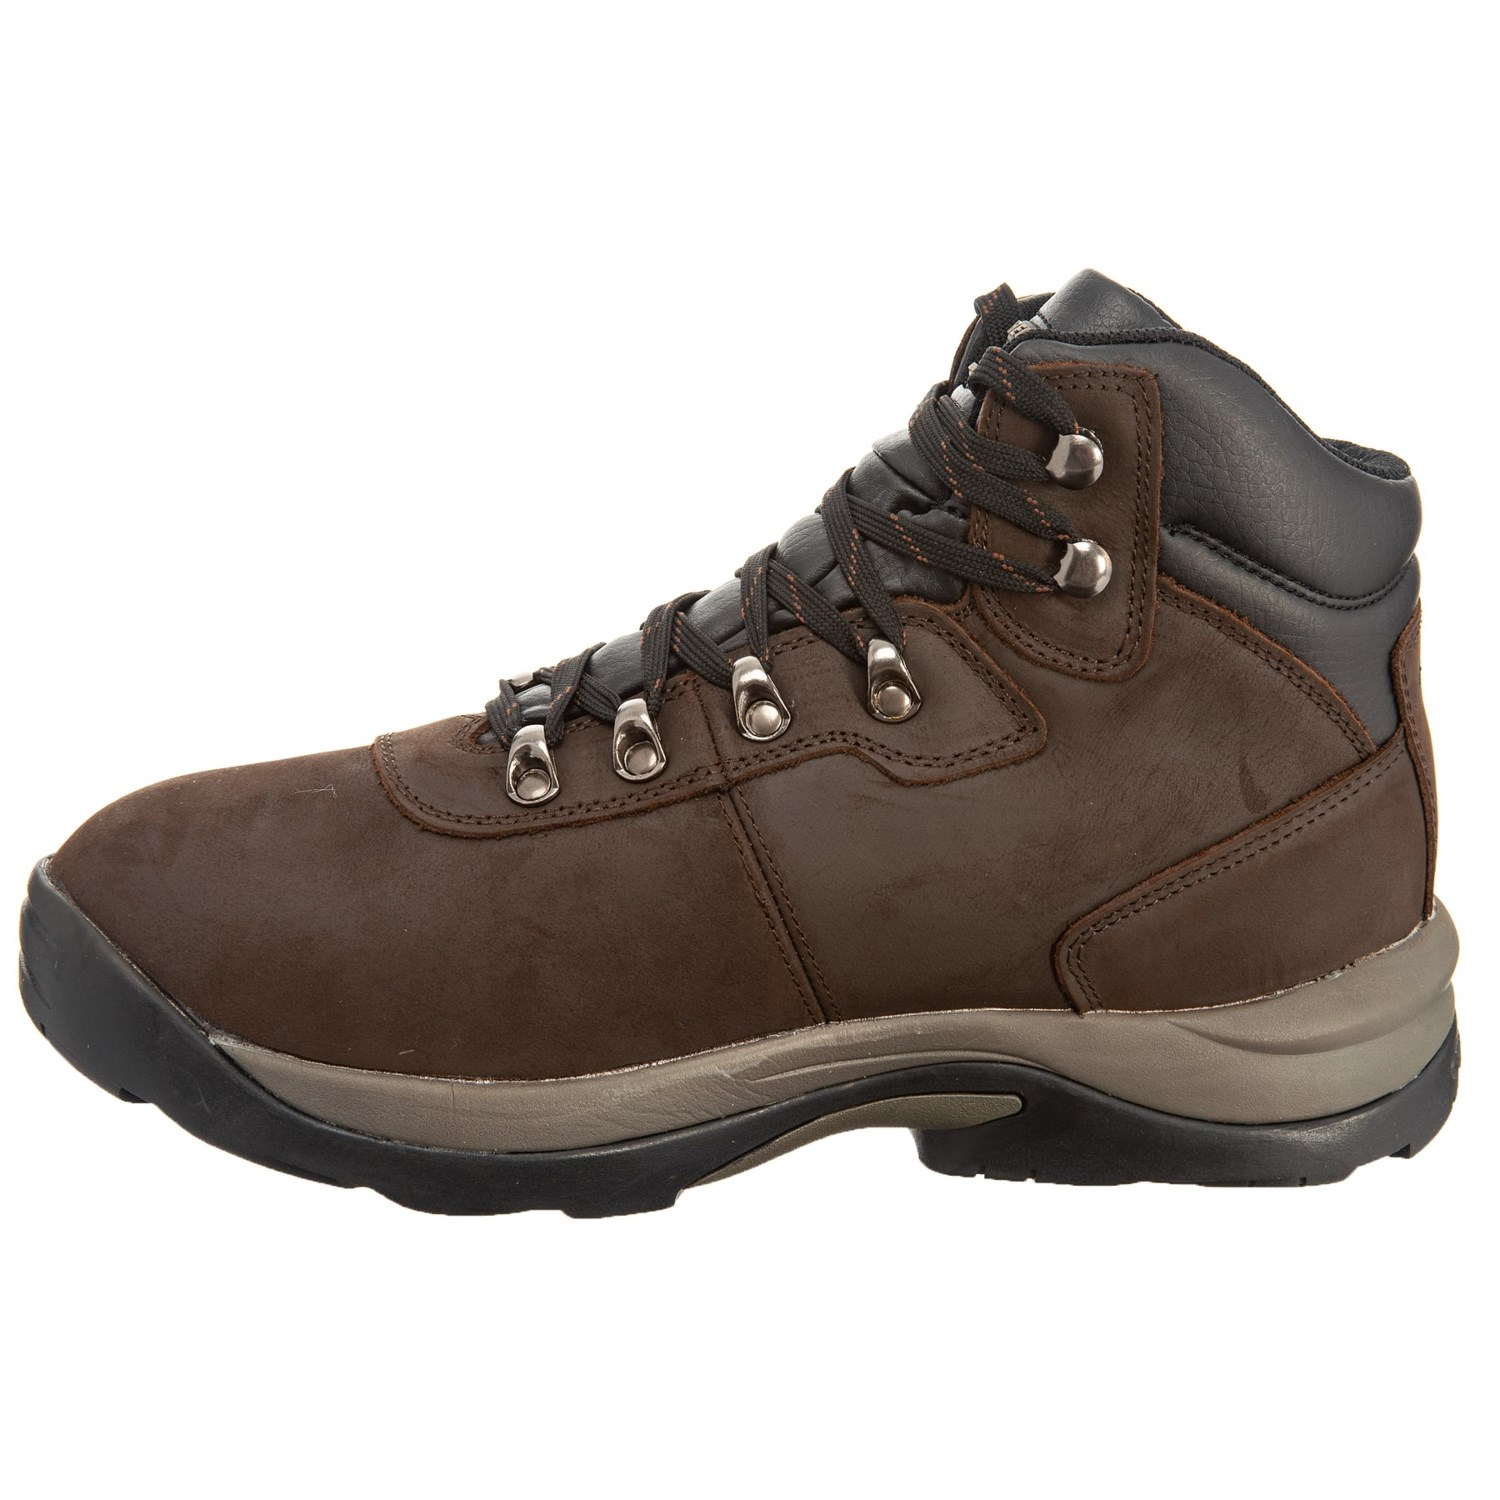 5d24450a1bde57 Hi-Tec Altitude VI Hiking Boots - Waterproof (For Men)